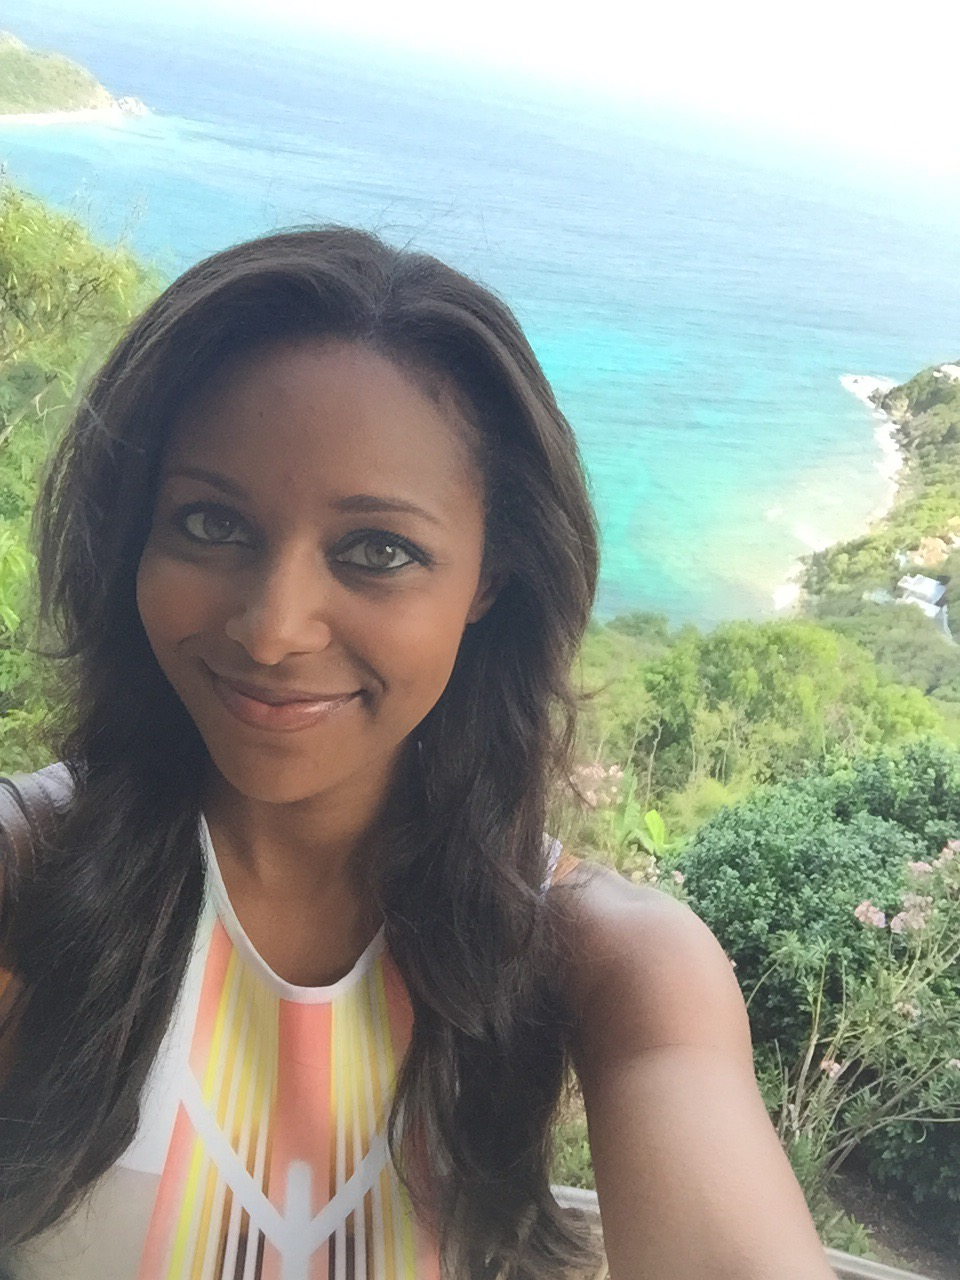 Cleavage Brandi Rhodes nude (51 foto and video), Topless, Bikini, Twitter, swimsuit 2017